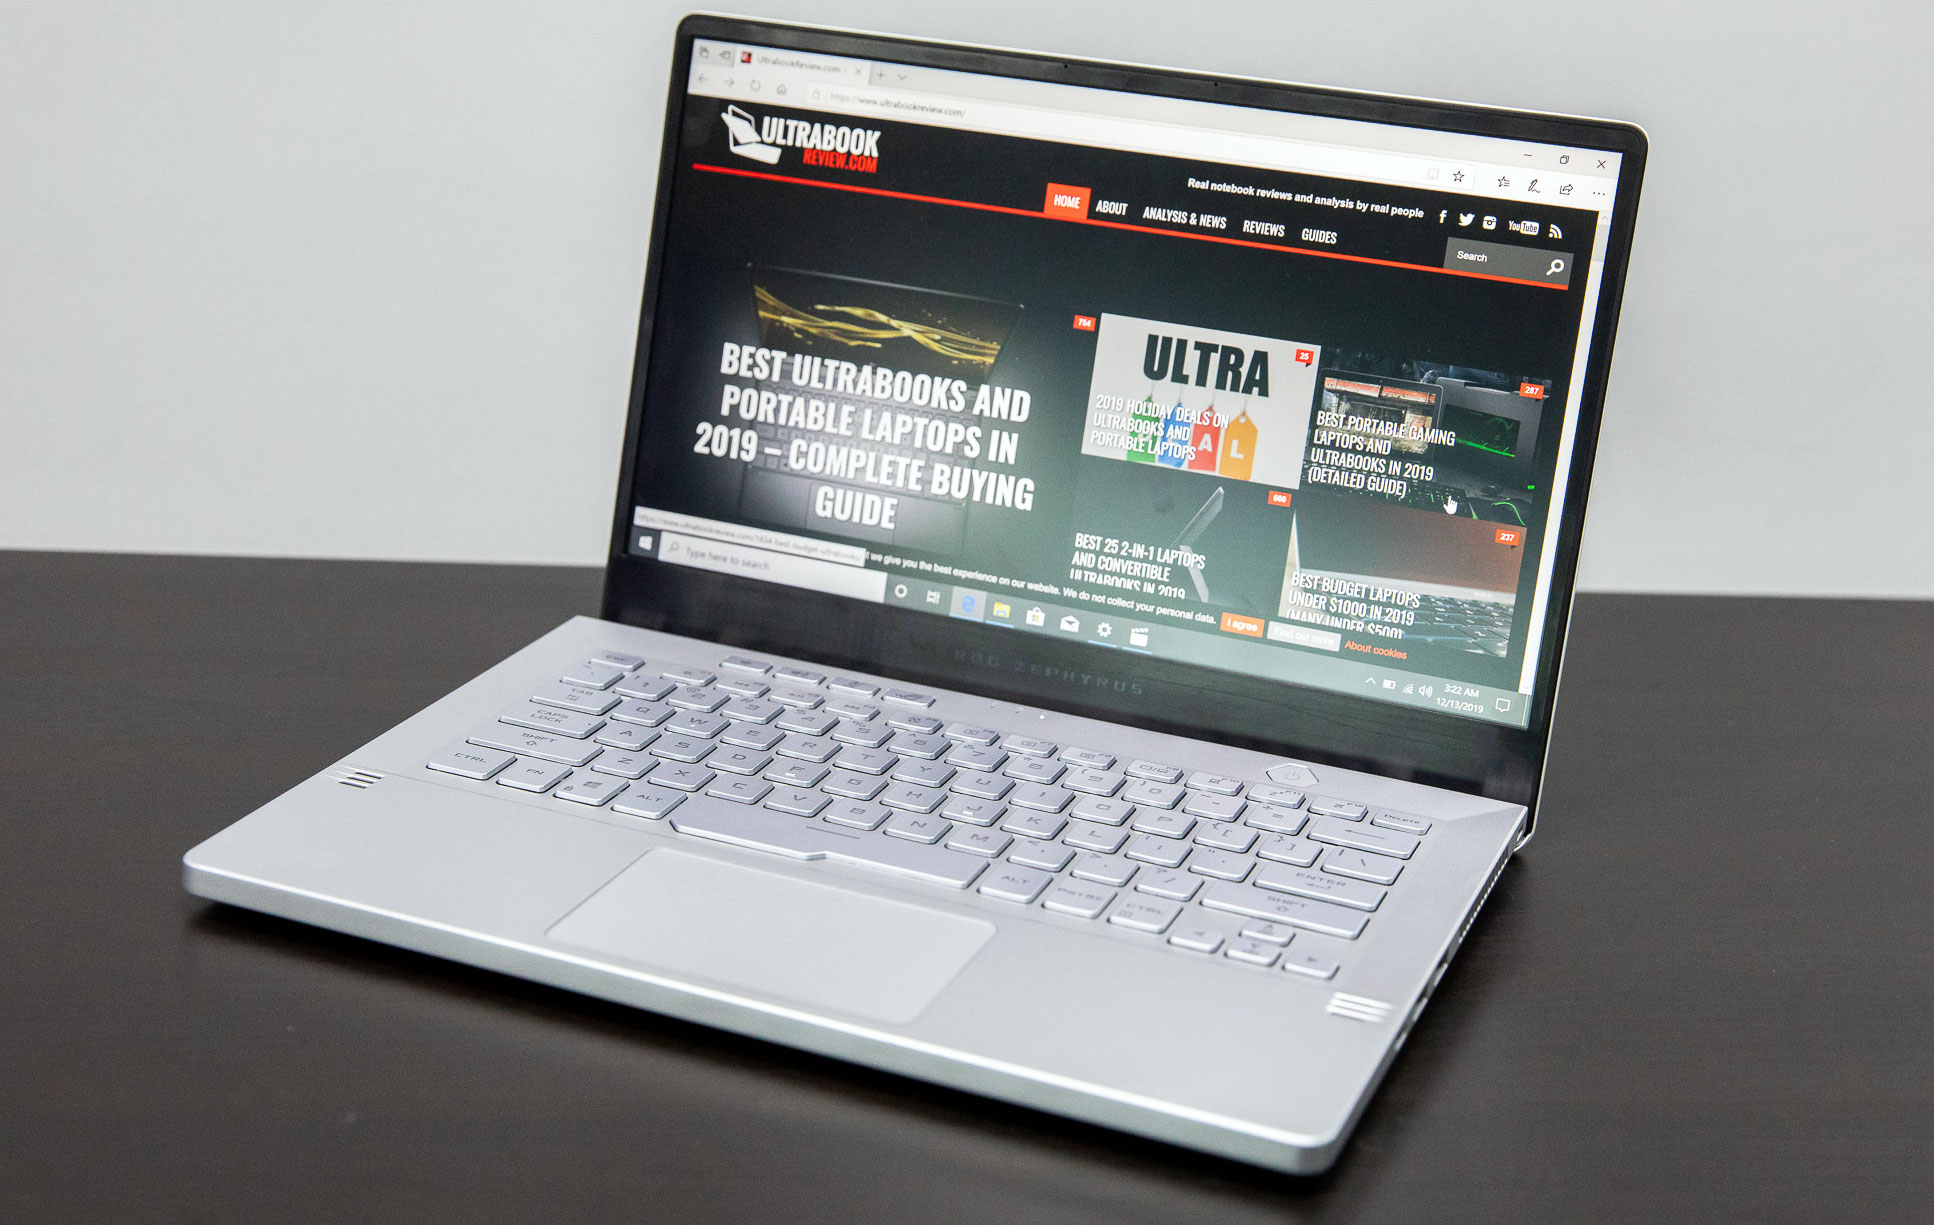 14-inch Asus Zephyrus G14 with AMD Ryzen 4000 and RTX 2060 graphics